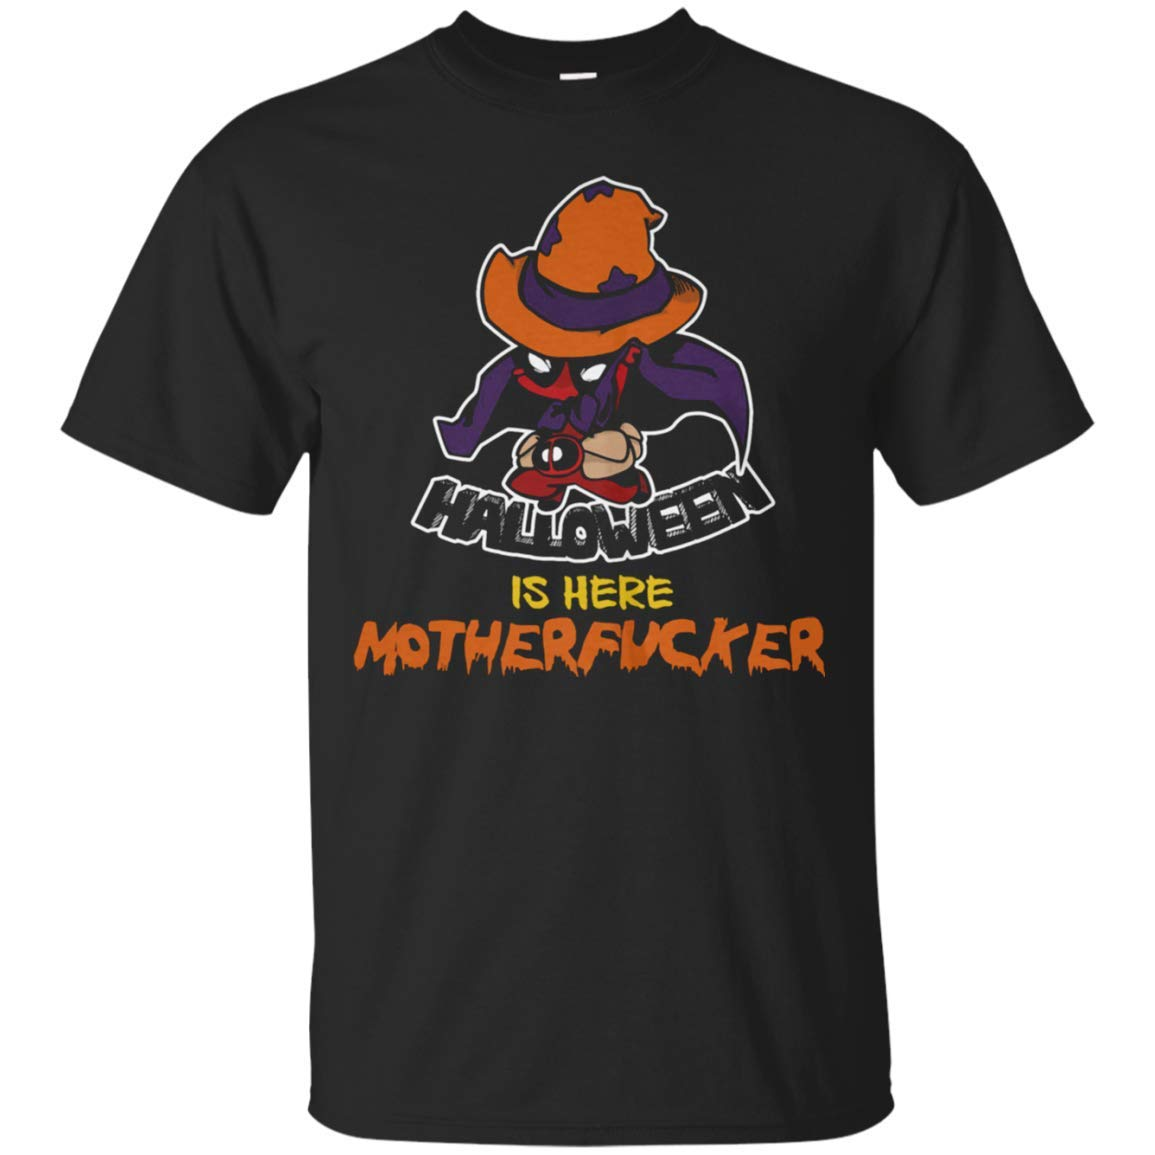 Busas Hug In A Cup Halloween Is Here Motherfucker T Shirt Tula Store S 5 3599